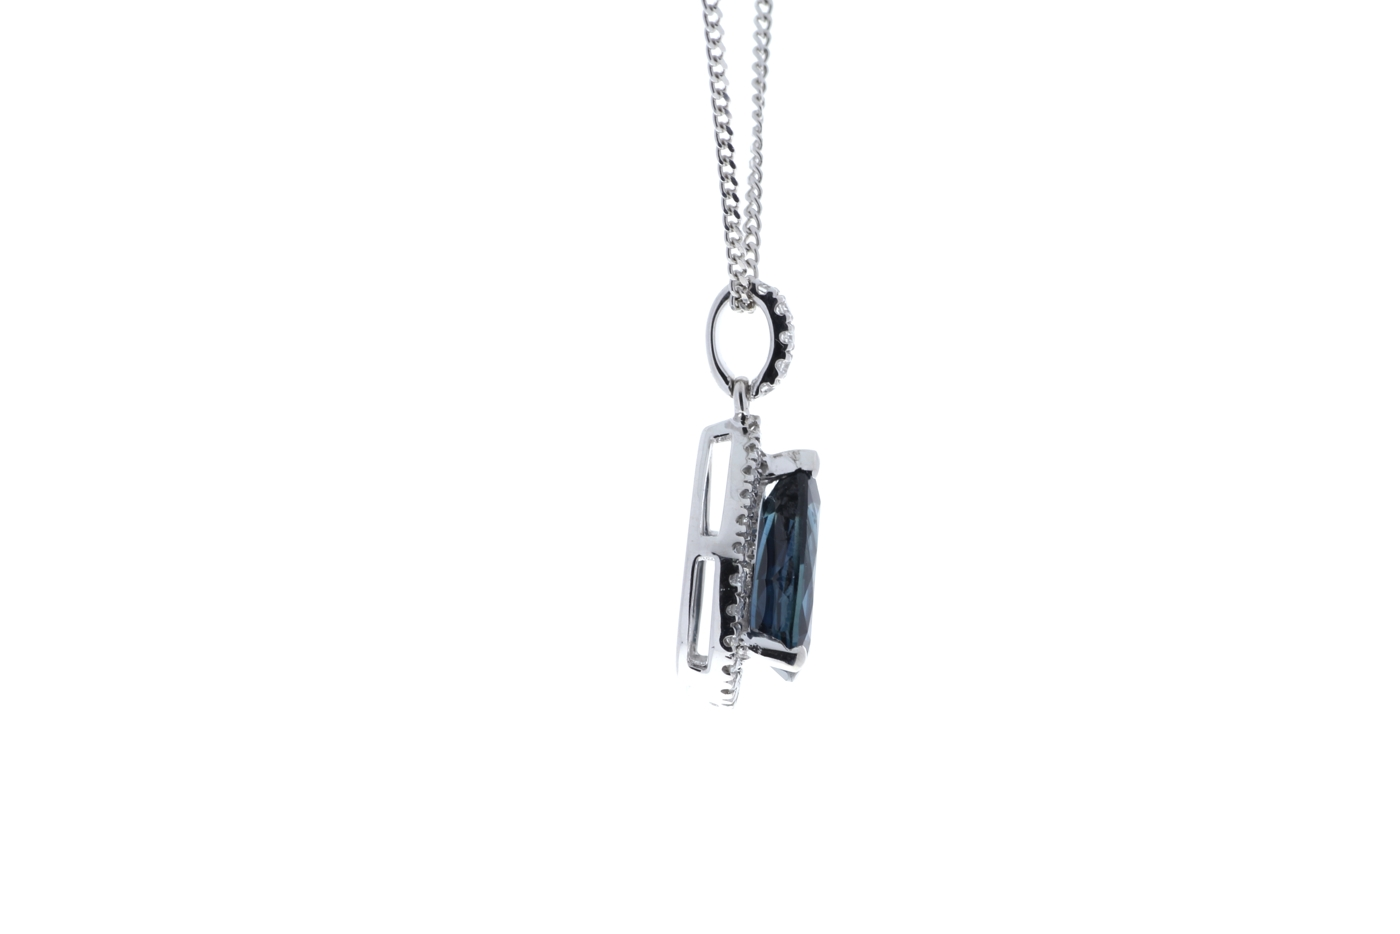 18ct White Gold Diamond And Sapphire Pendant 2.35 Carats - Image 2 of 4